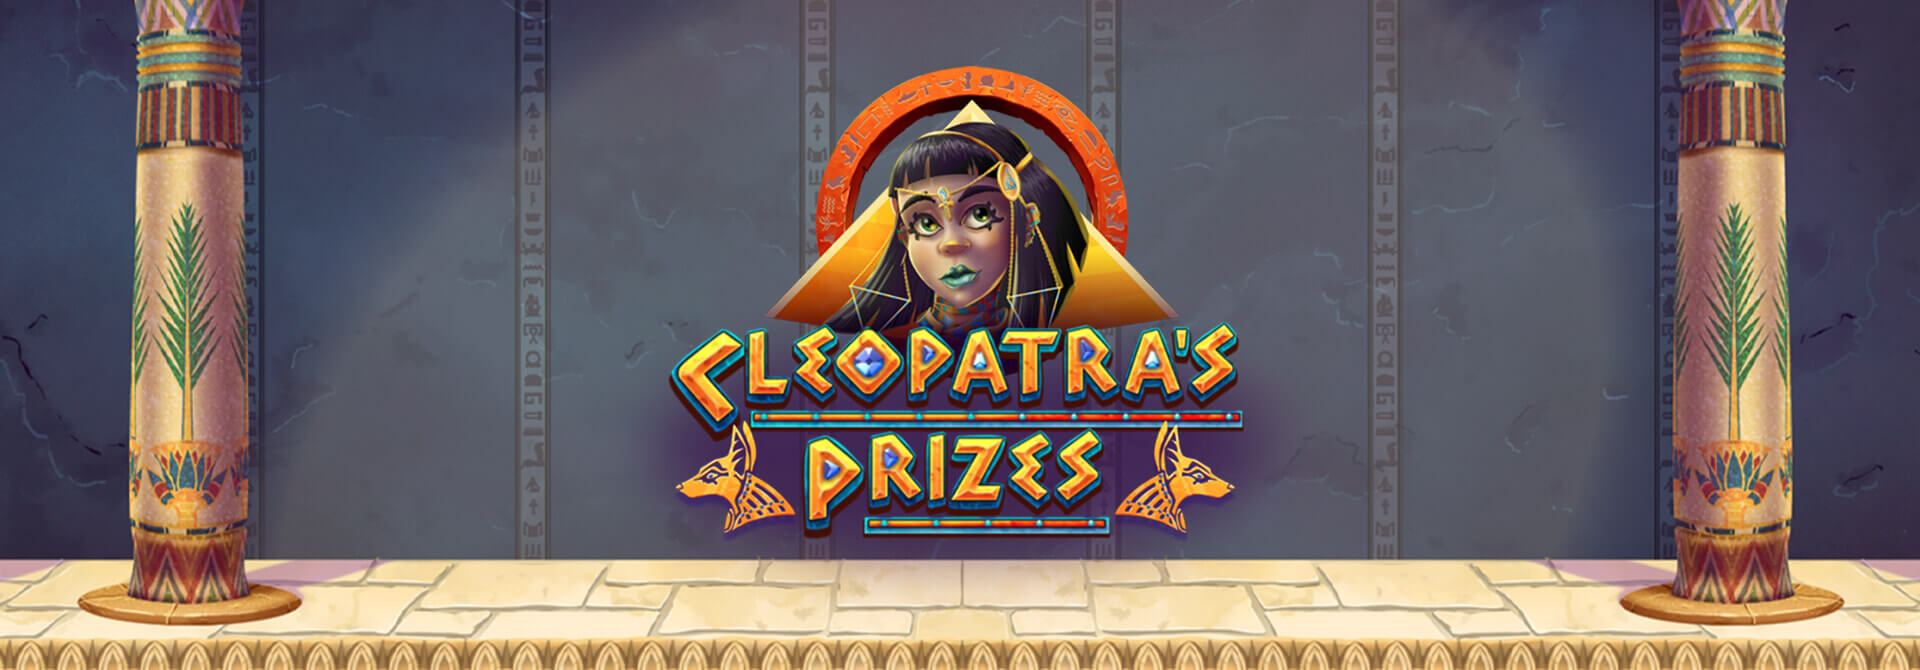 NEW GAME ALERT: Cleopatra's Prizes